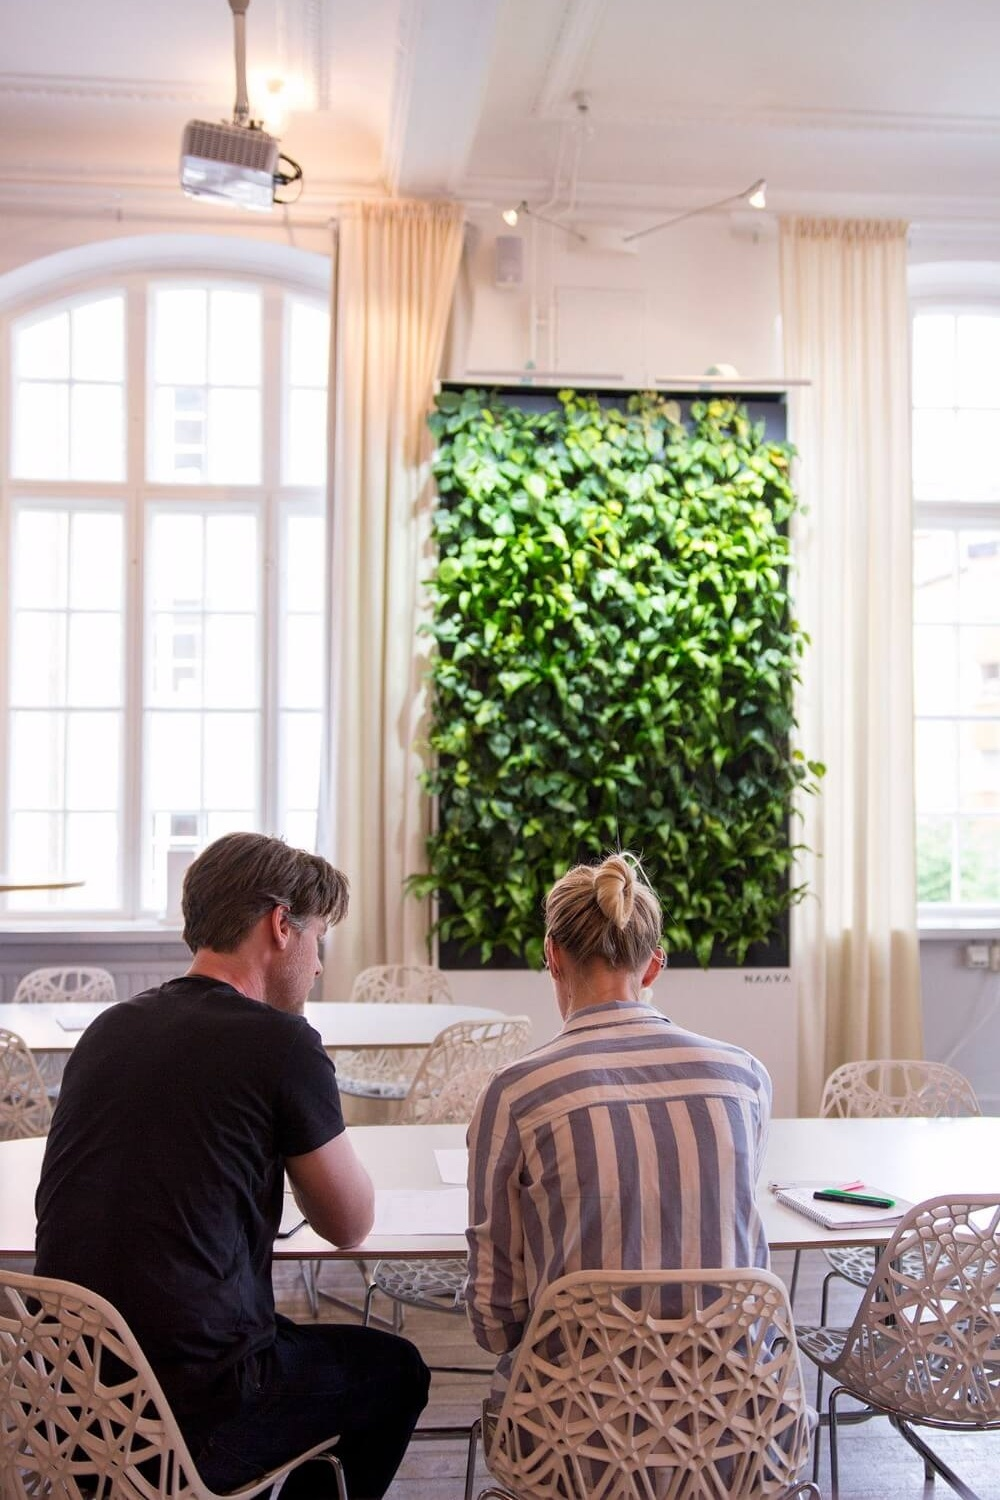 Naava brings light and greenery into indoor spaces.